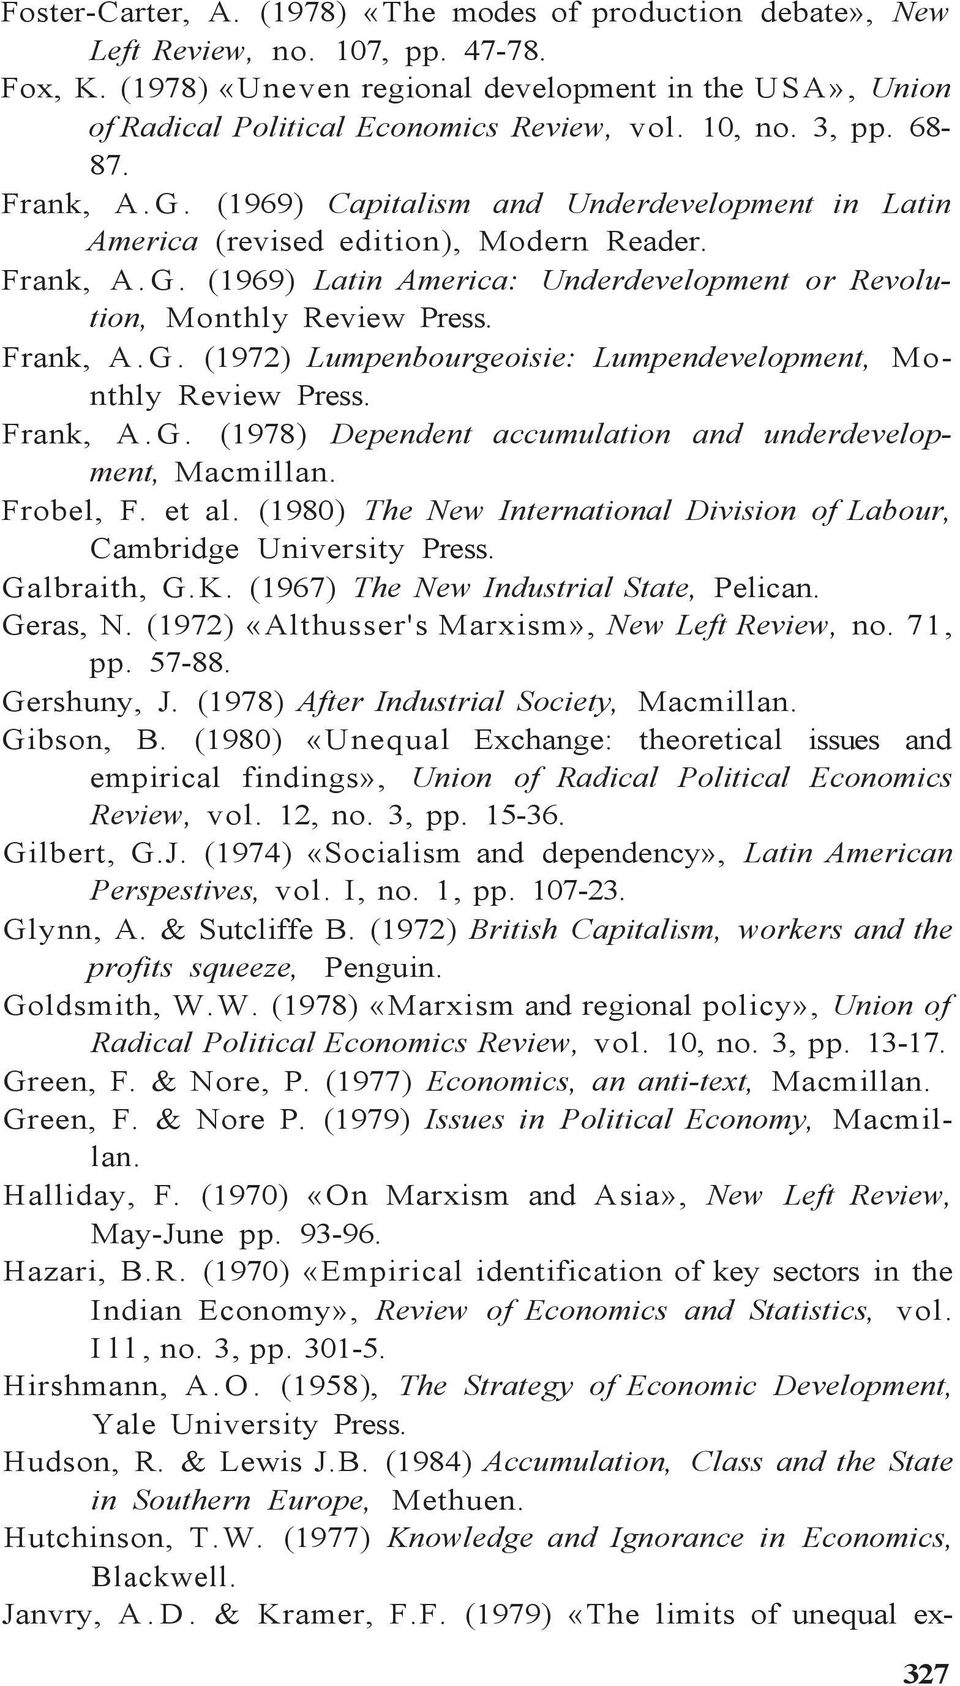 (1969) Capitalism and Underdevelopment in Latin America (revised edition), Modern Reader. Frank, A. G. (1969) Latin America: Underdevelopment or Revolution, Monthly Review Frank, A. G. (1972) Lumpenbourgeoisie: Lumpendevelopment, Monthly Review Frank, A.